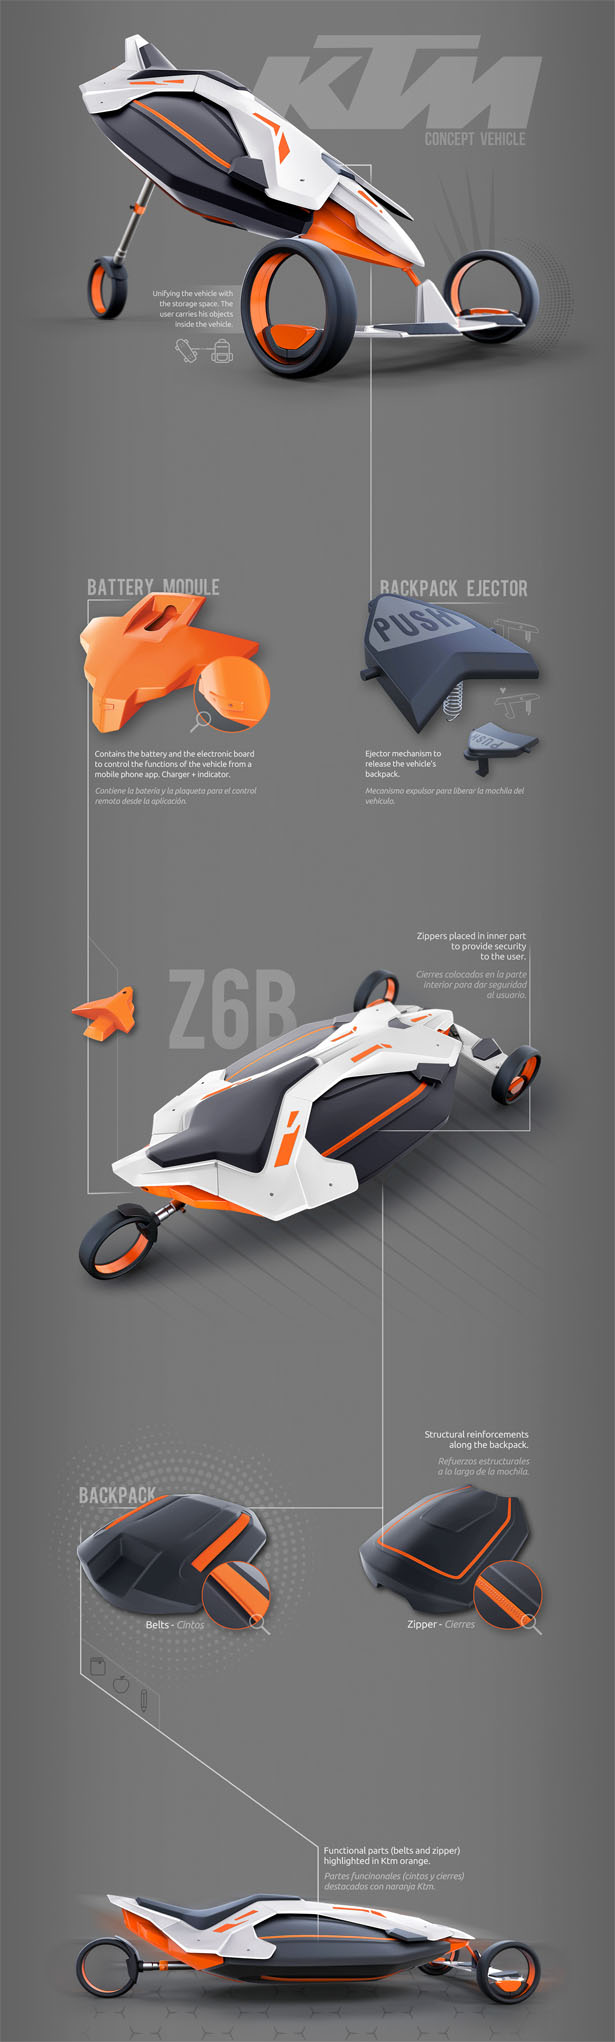 KTM Unipersonal Concept Vehicle by Manuel Frontini